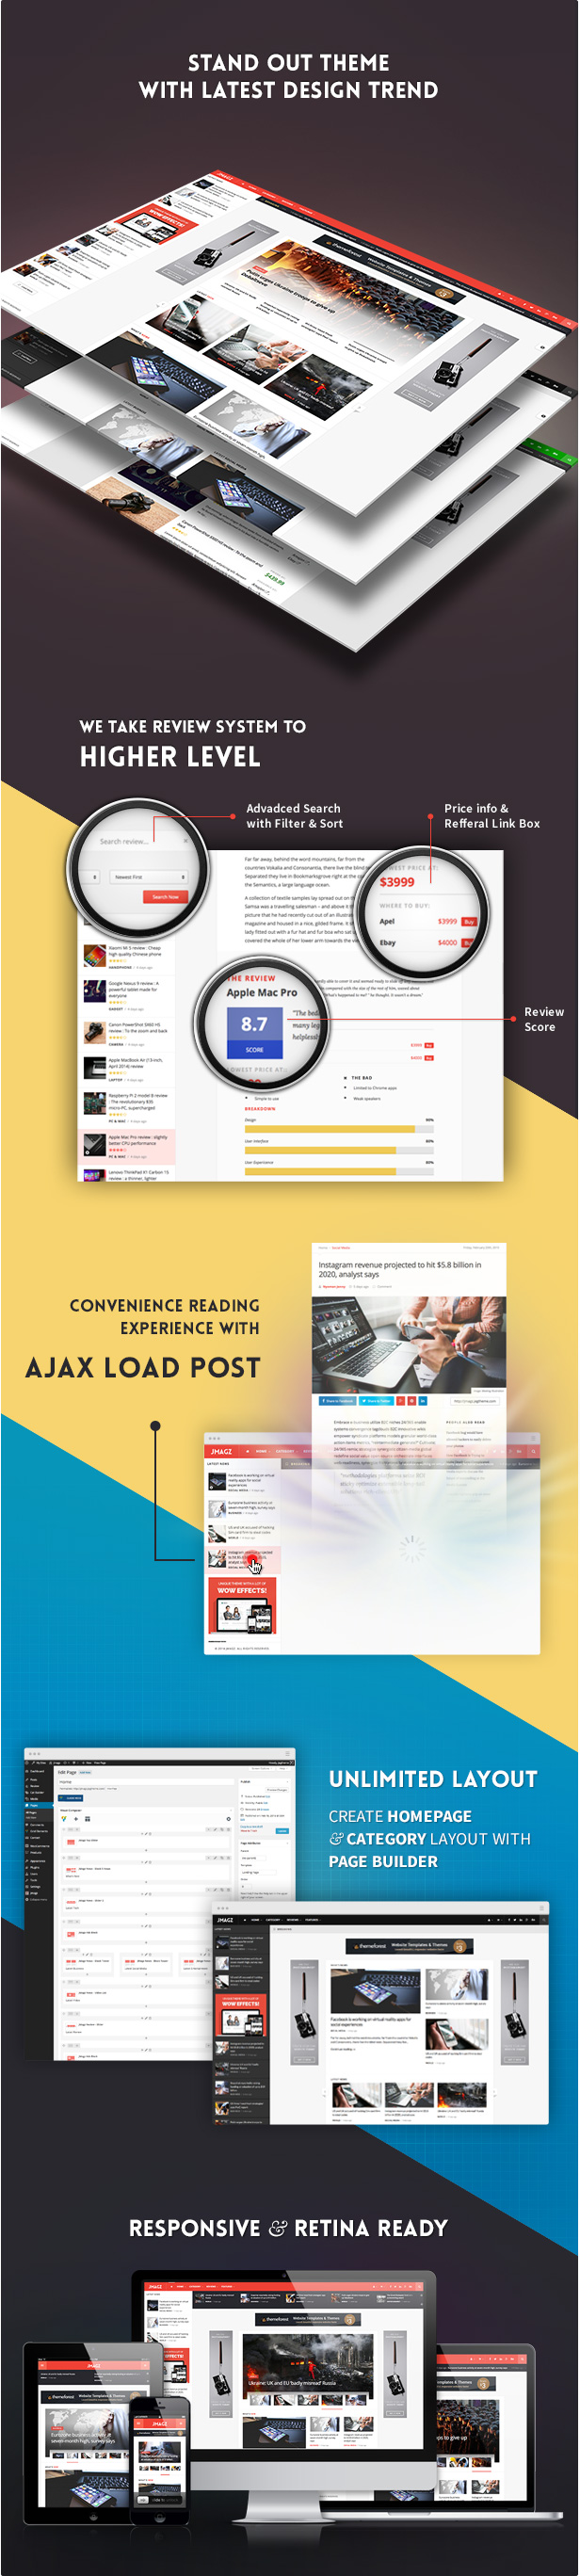 JMagz - Tech News Review Magazine WordPress Theme - 2